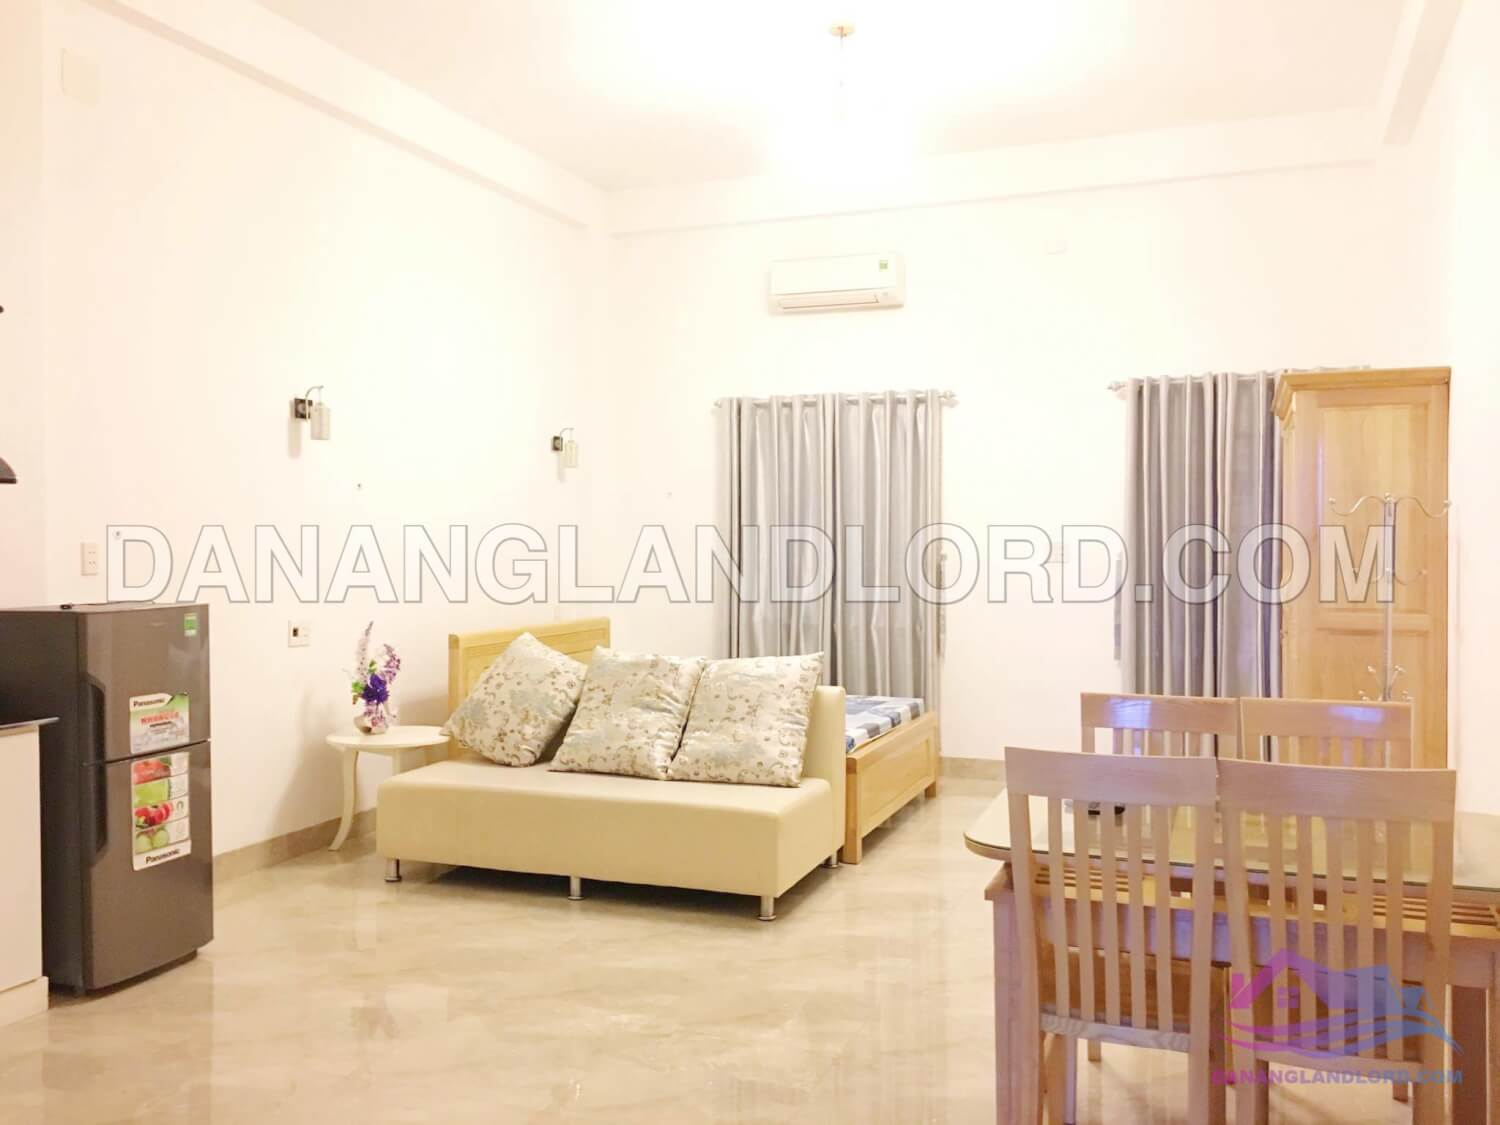 Studio apartment in an thuong area yj2k da nang landlord for Studio apartment area